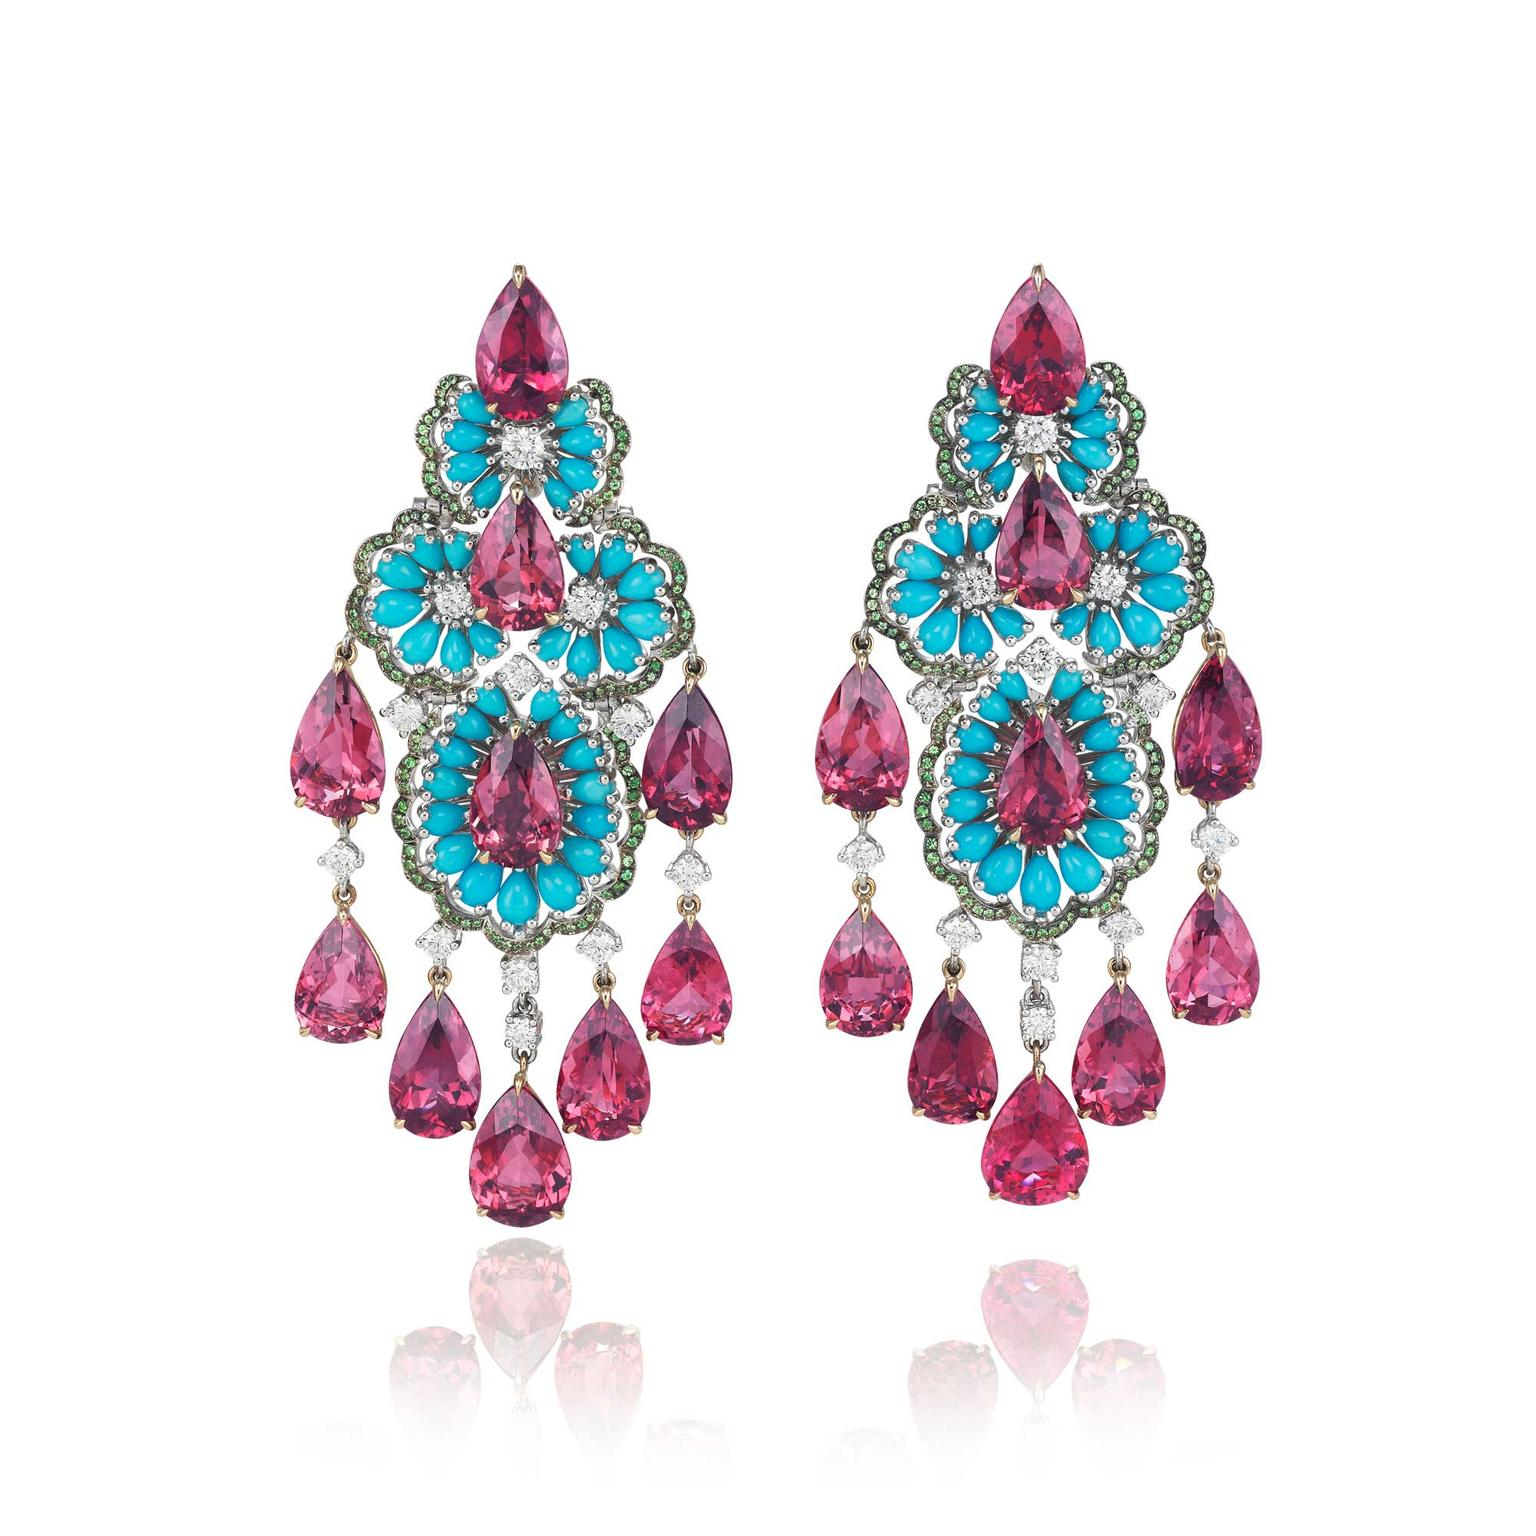 Chopard earrings with turquoise, rubellites and diamonds